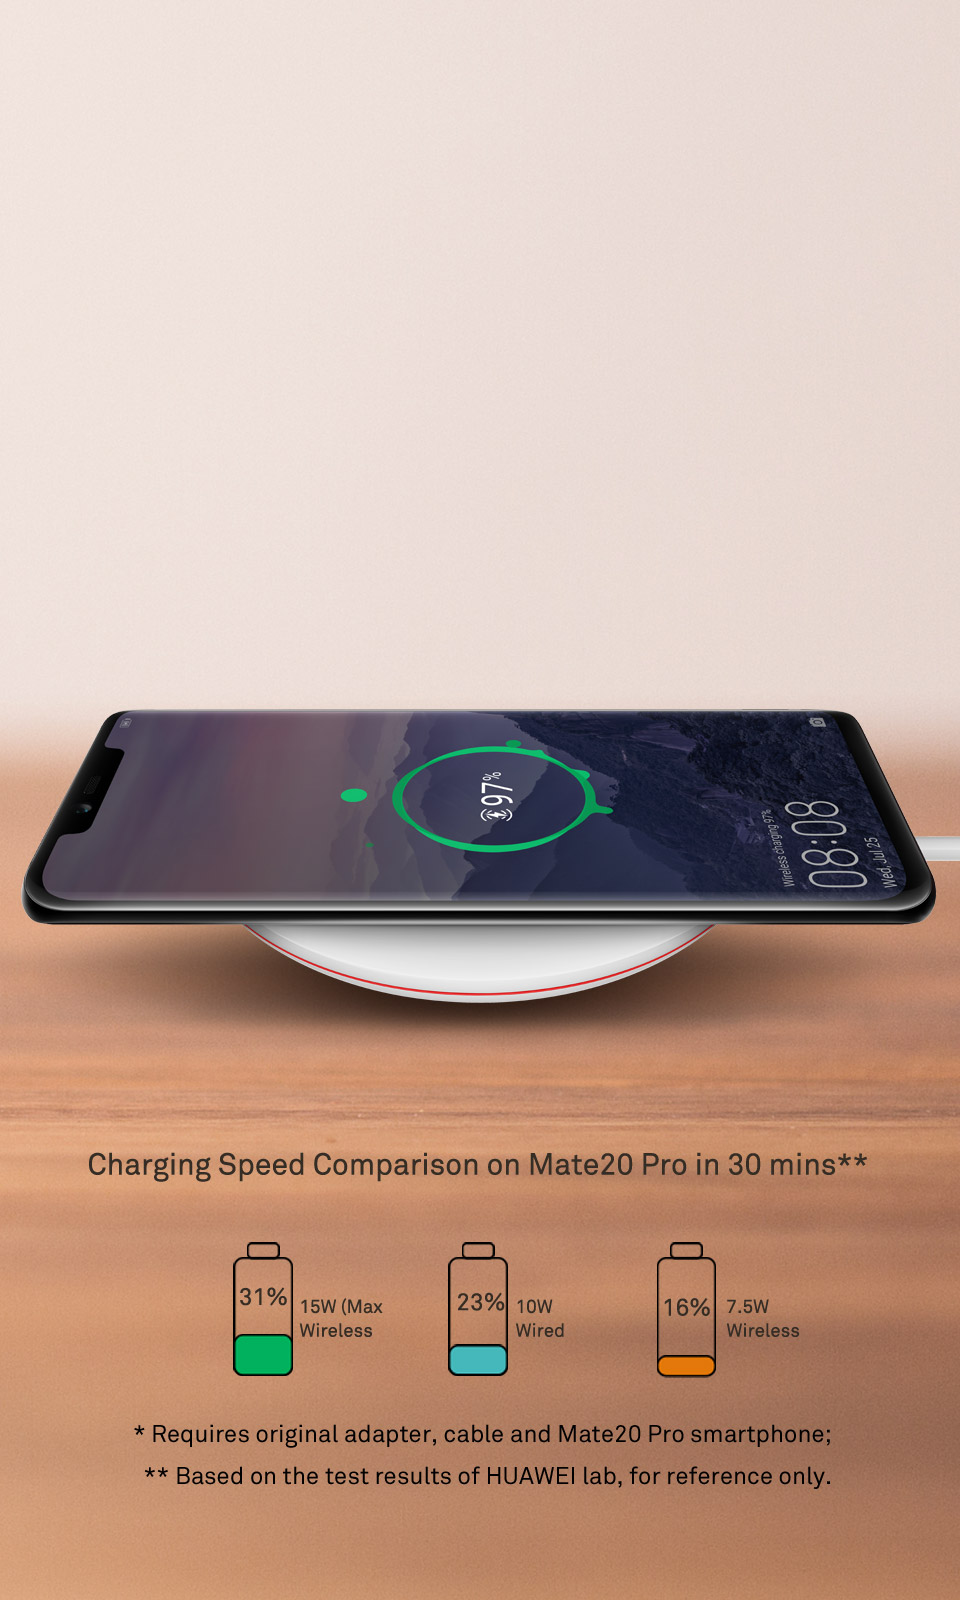 15W (Max) Quick Wireless Charge